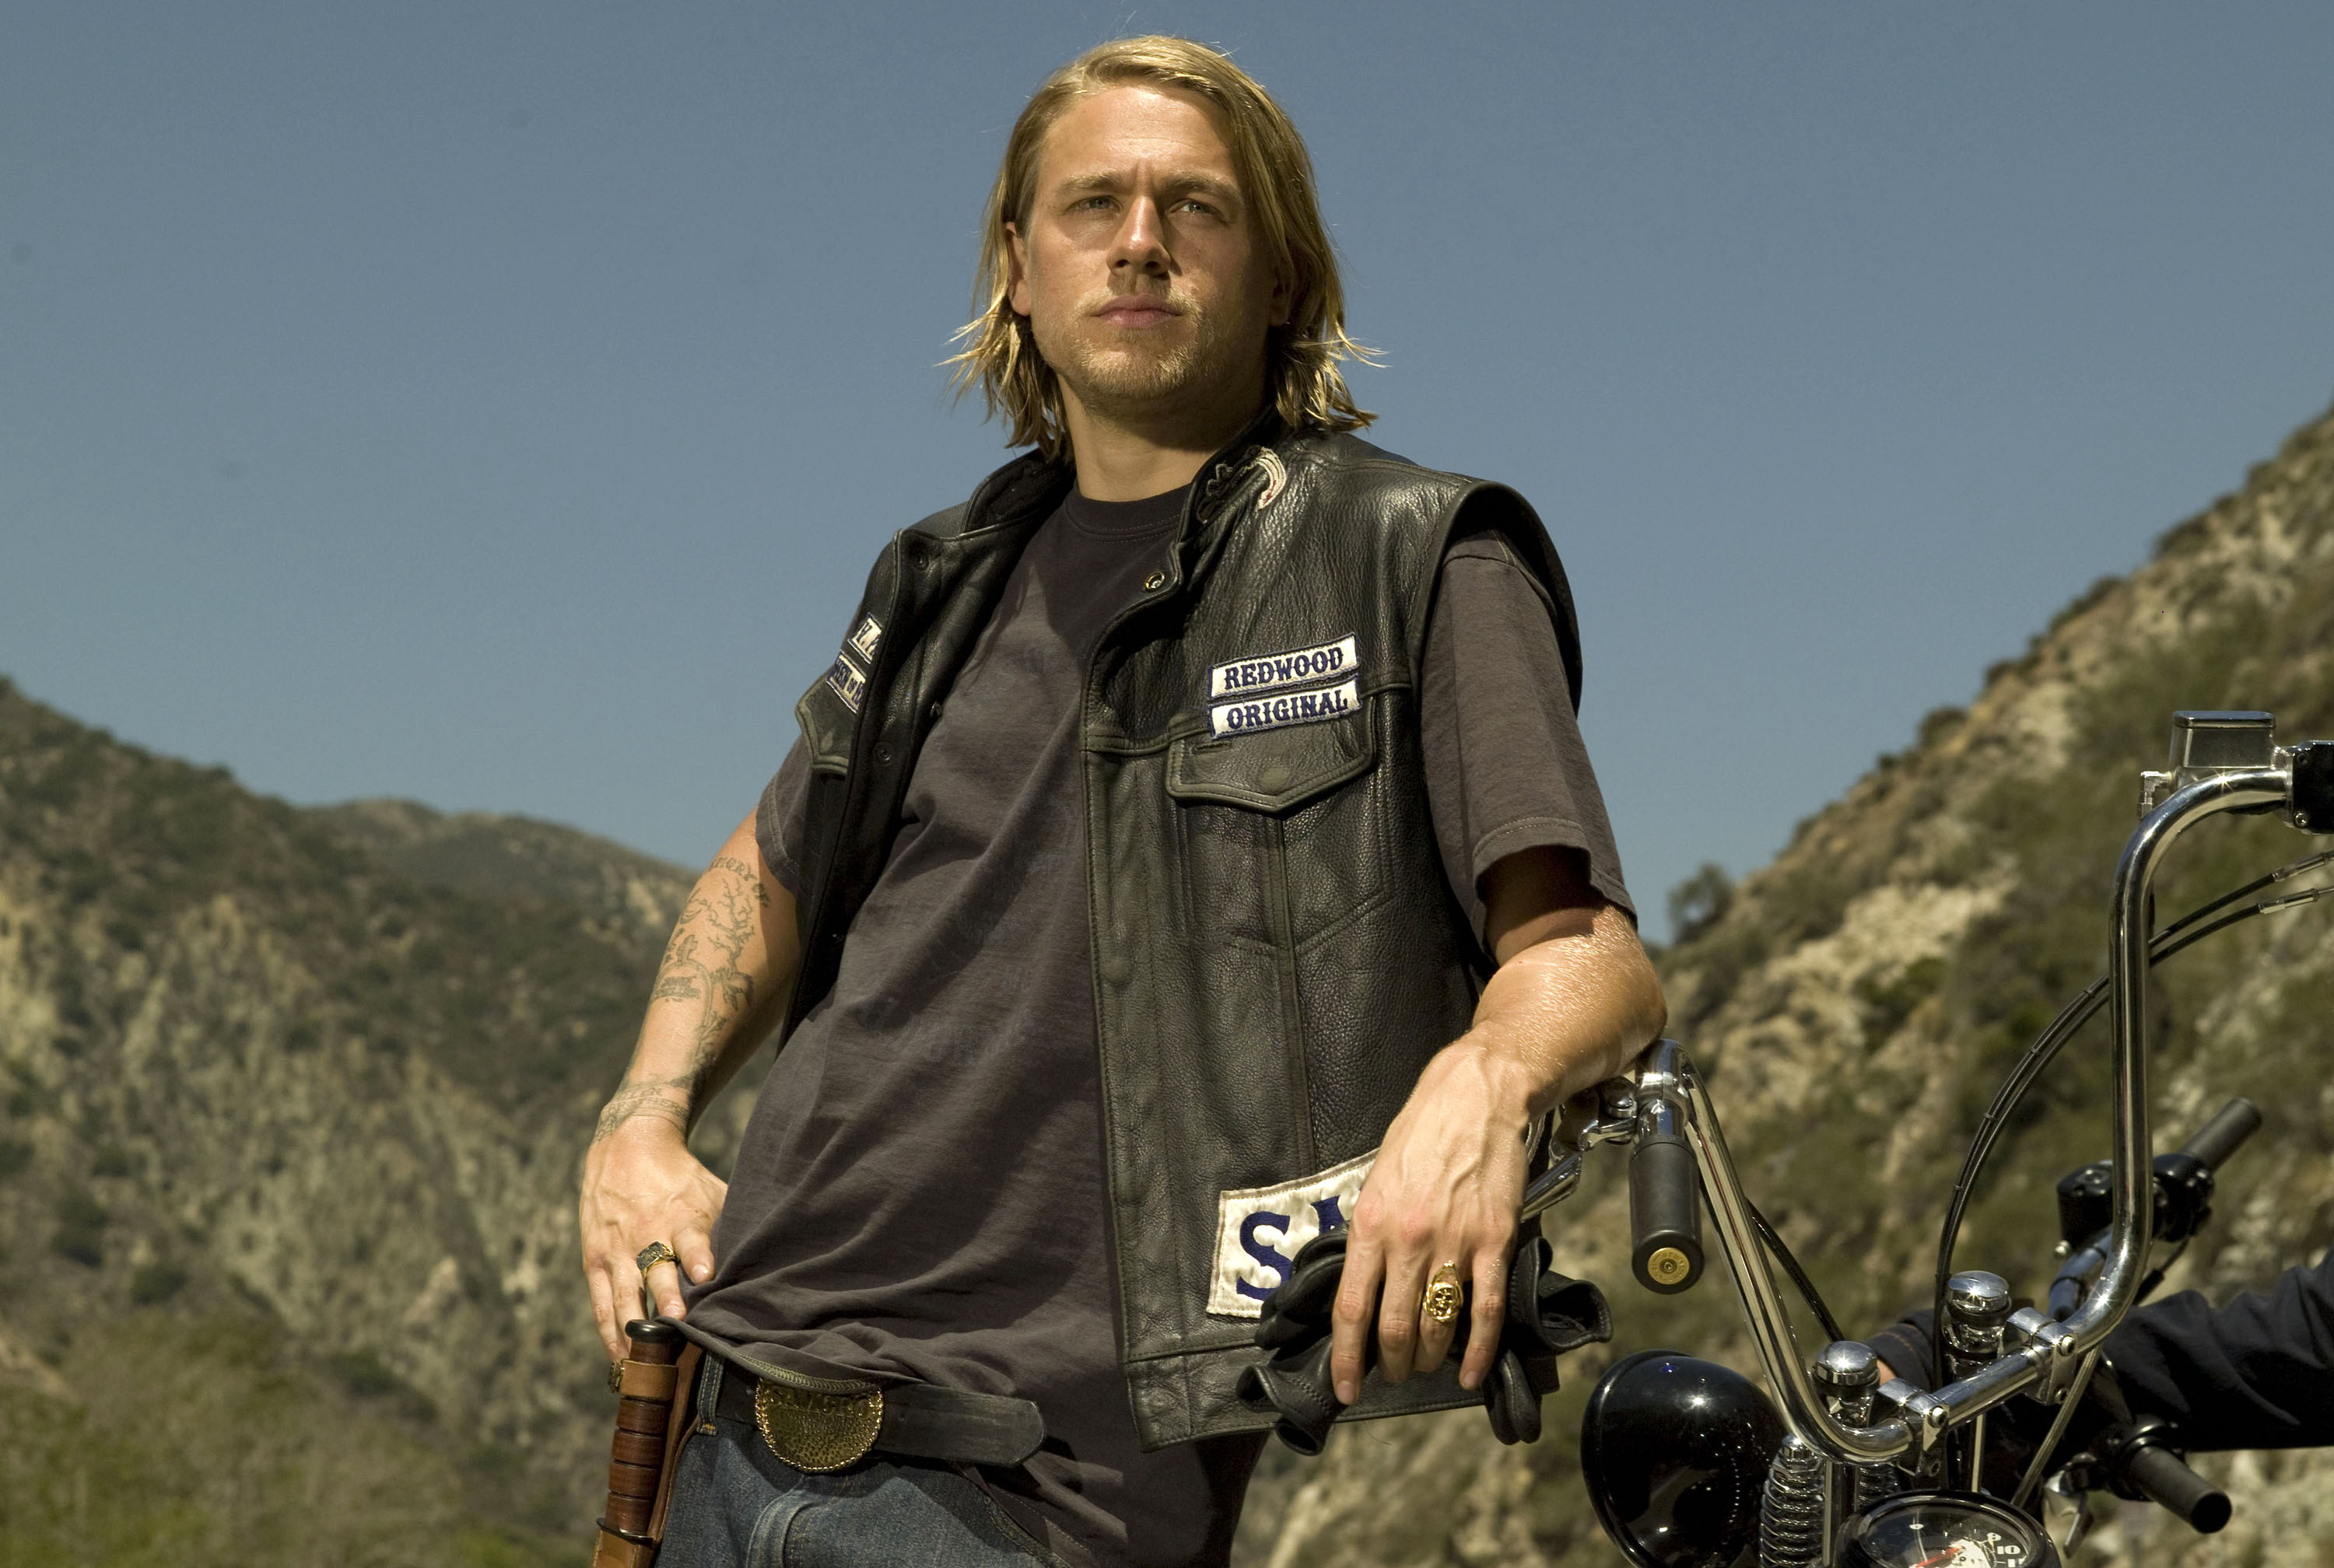 Charlie Hunnam as Jax teller is standing wearing leather jacket leaning on bike's handle